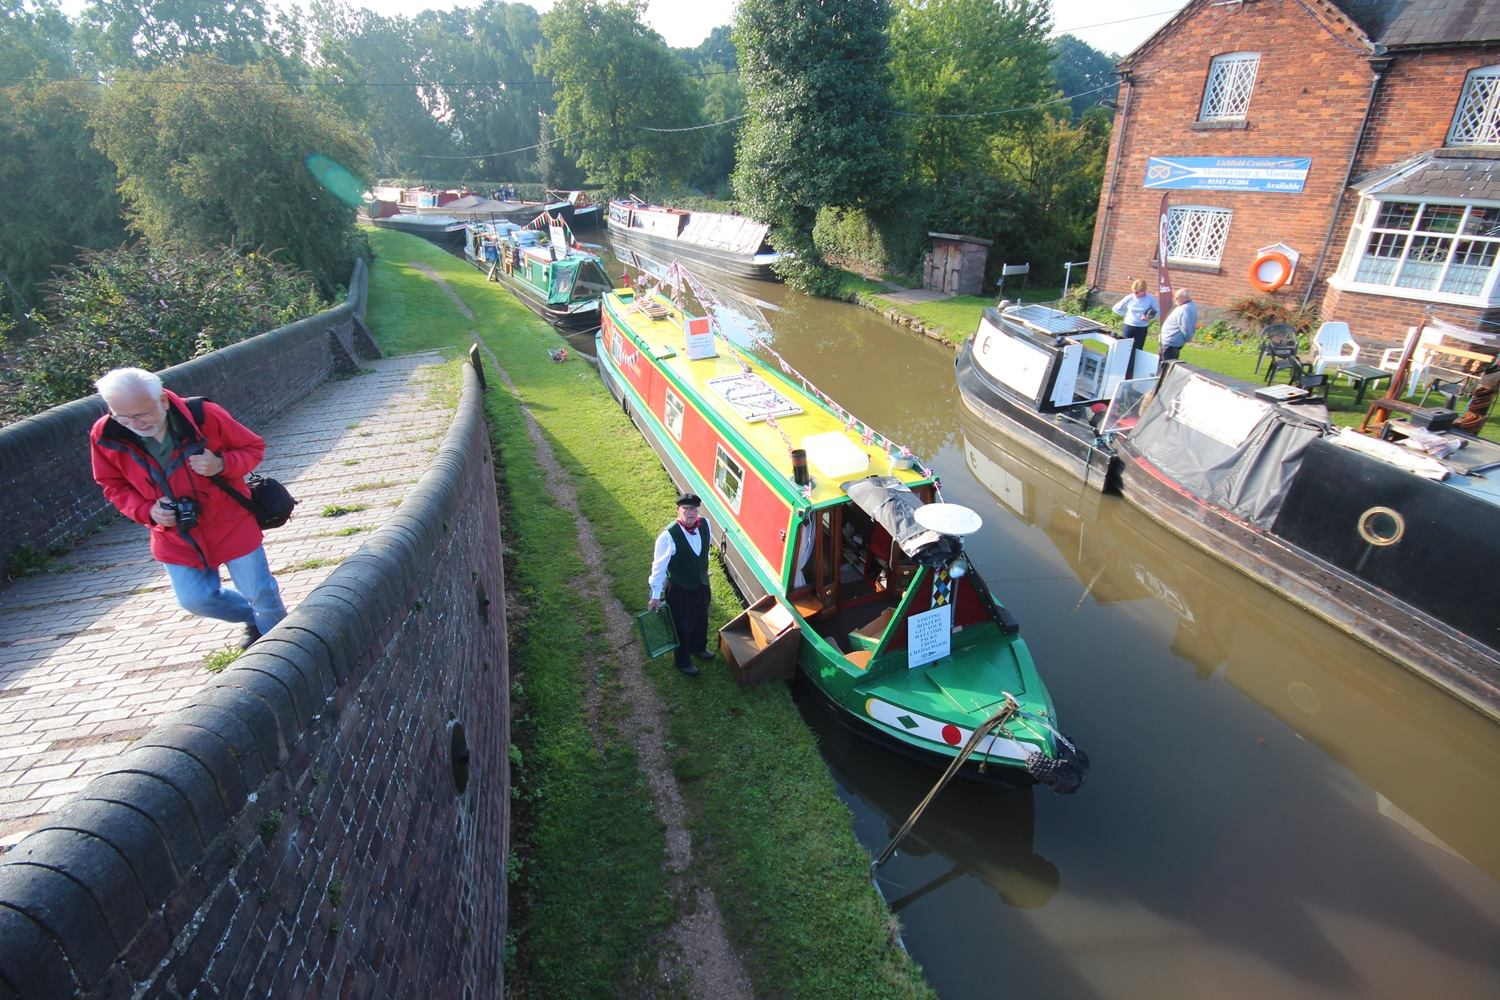 The Home Brew Boat at Huddlesford